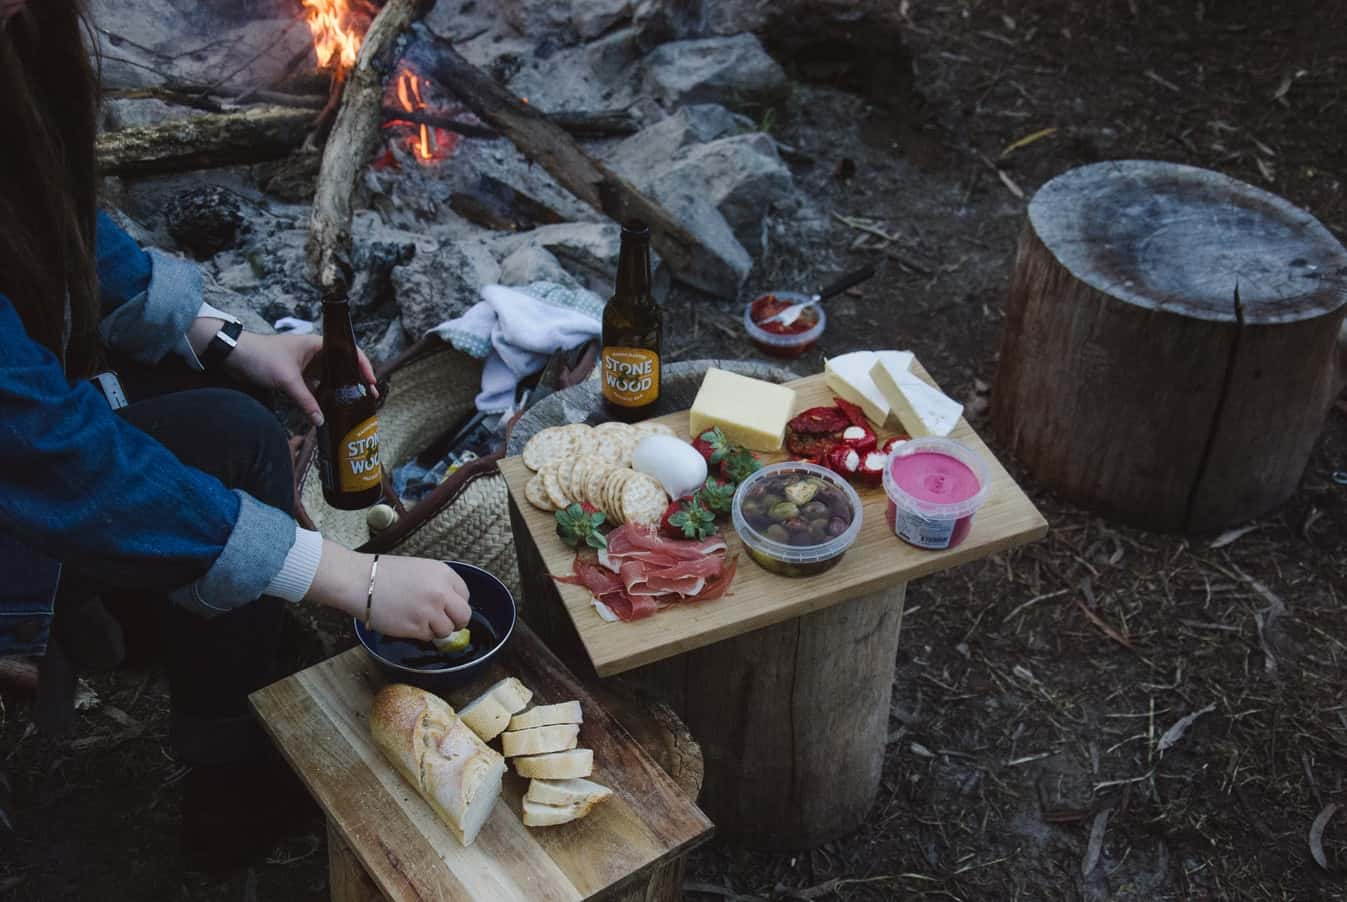 campers cooking with foods that don't require refrigeration